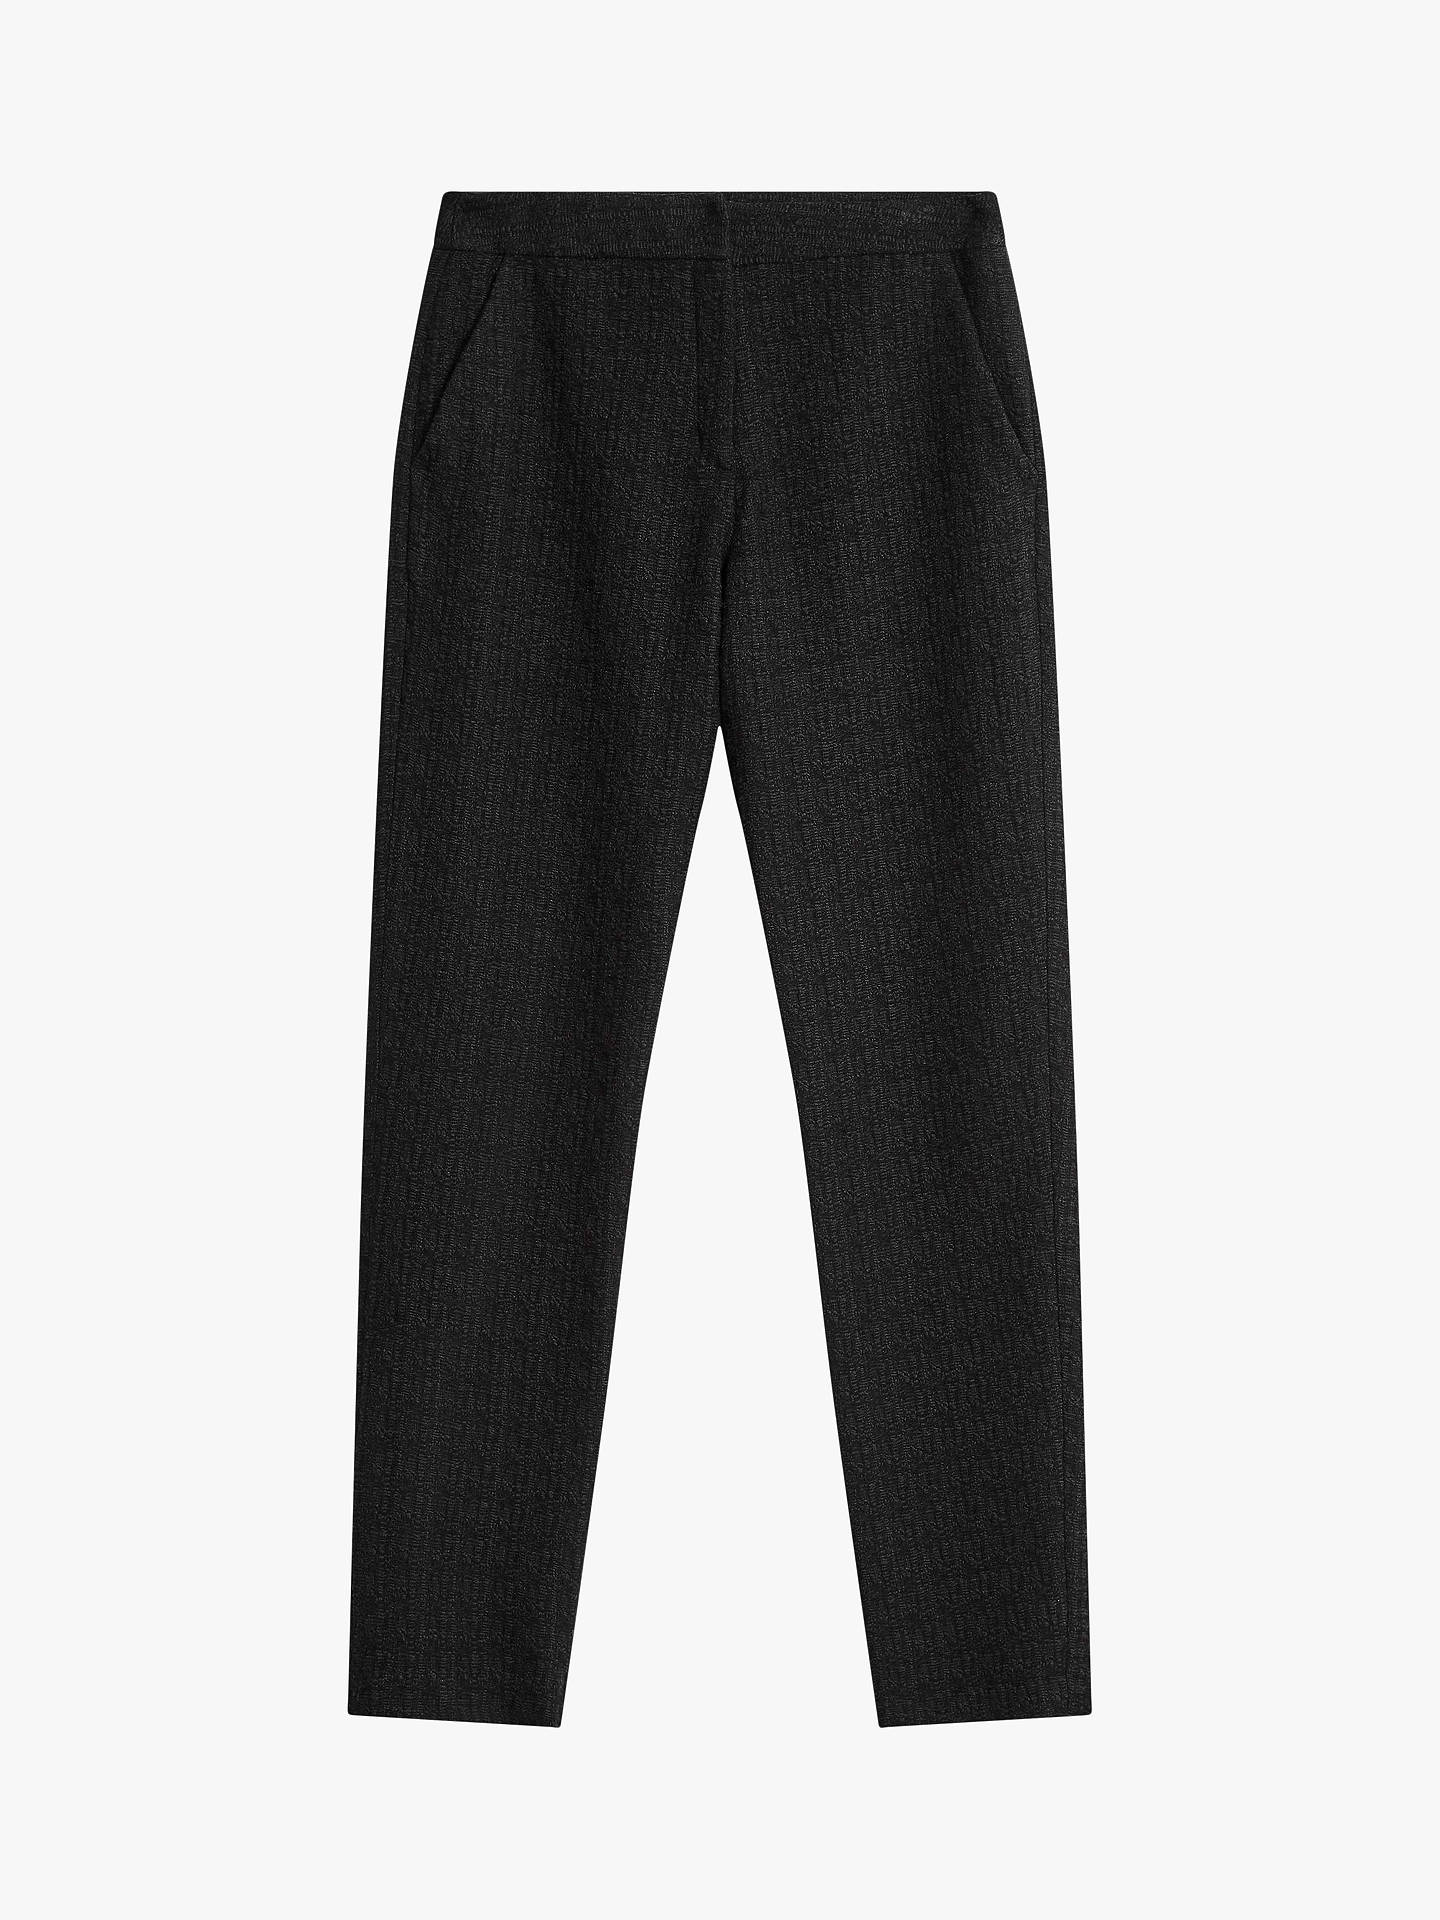 BuyBrora Textured Wool Mix Trousers, Charcoal, 12 Online at johnlewis.com